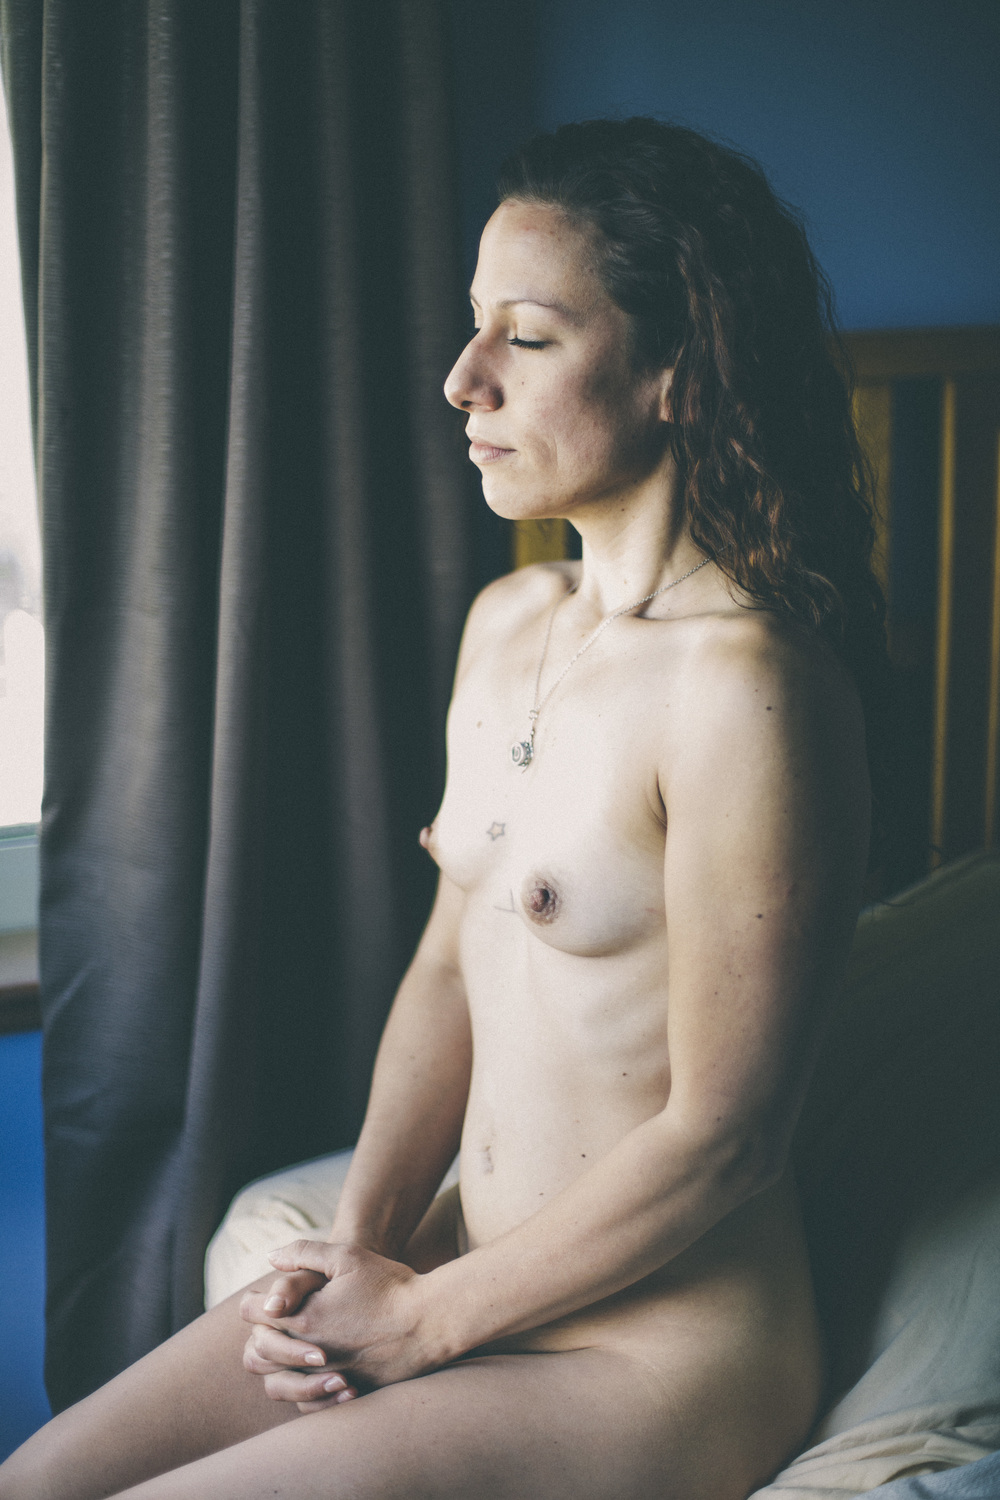 I woke up like this #022 fine art photography nudity body positivity 3